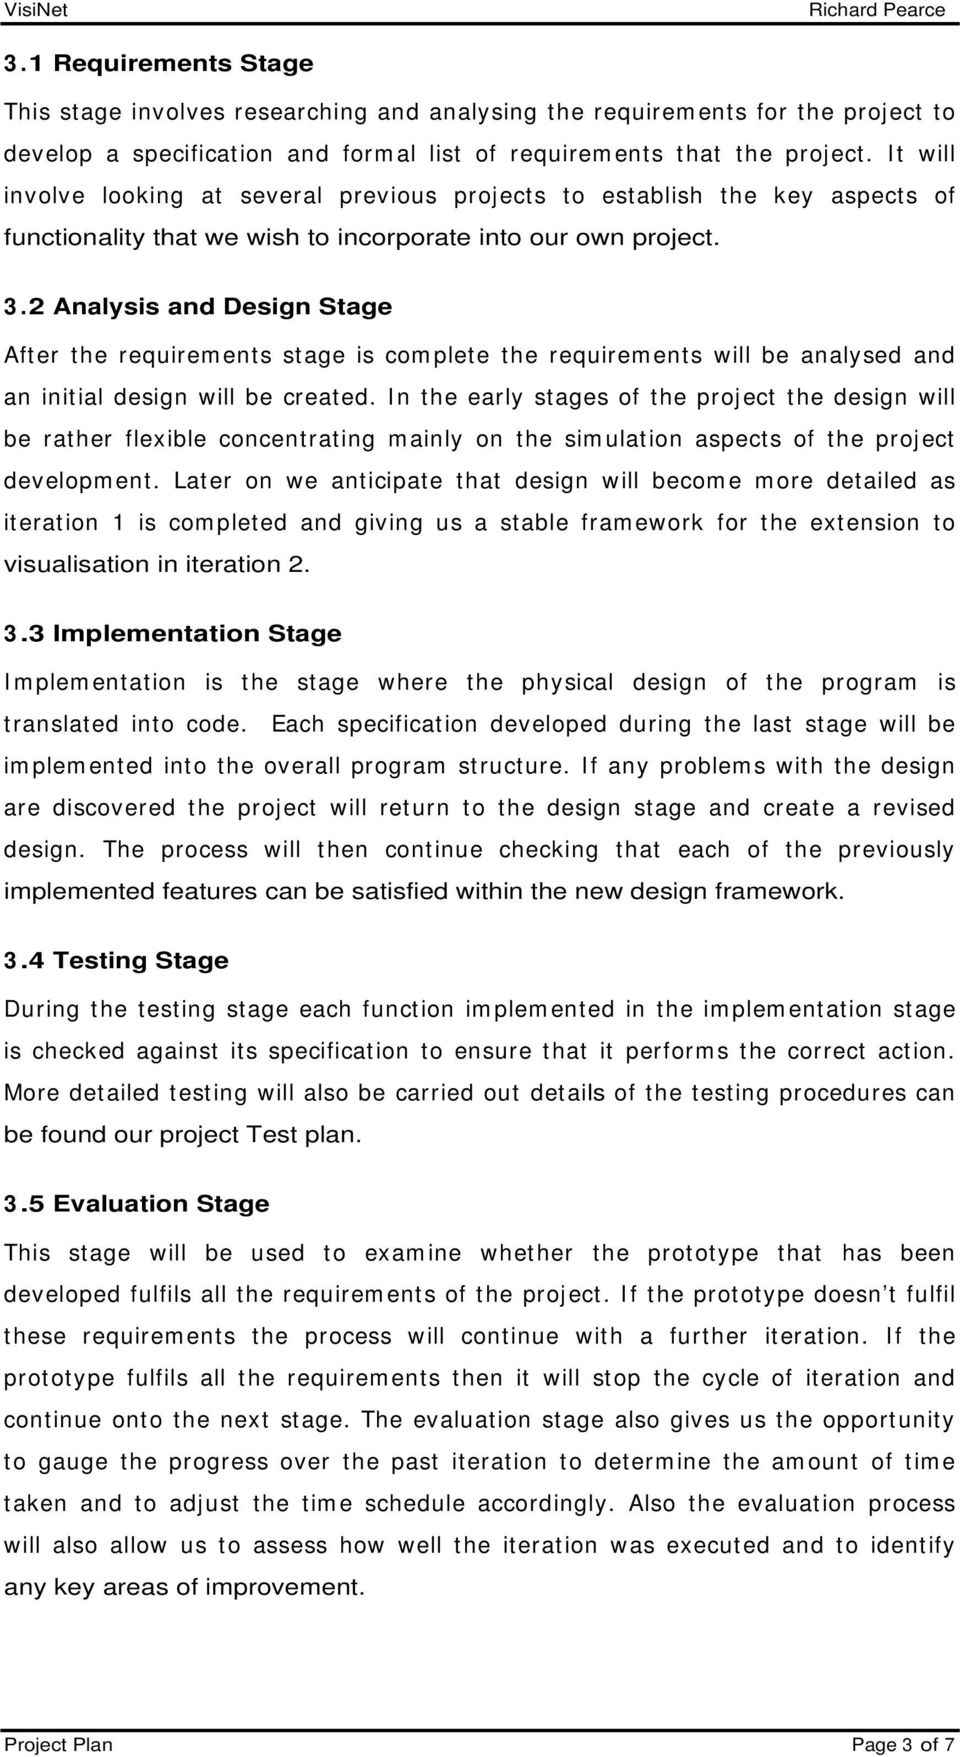 2 Analysis and Design Stage After the requirem ents stage is com plete the requirem ents will be analysed and an initial design will be created.